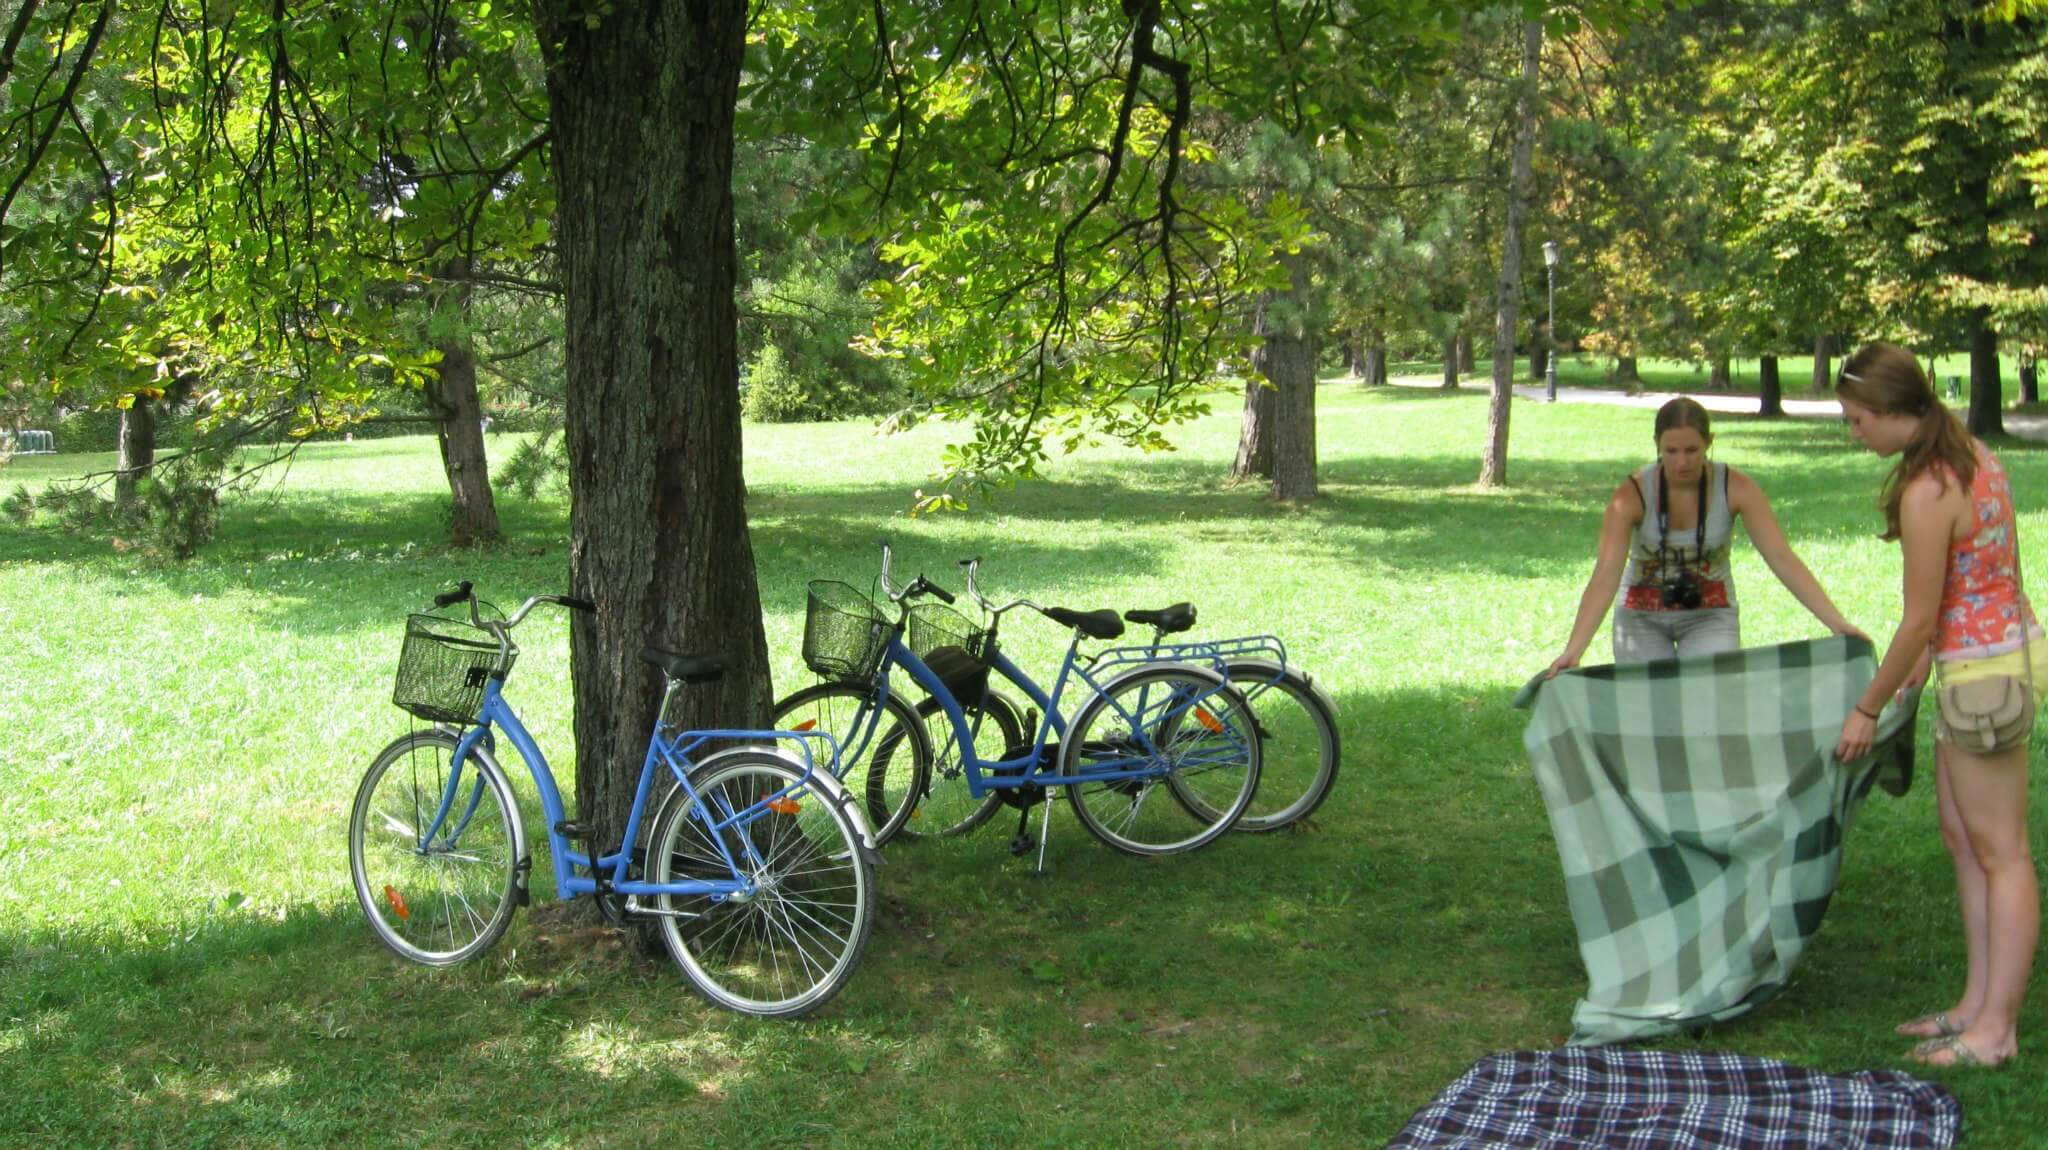 Stoping on a bike tour for a picnic